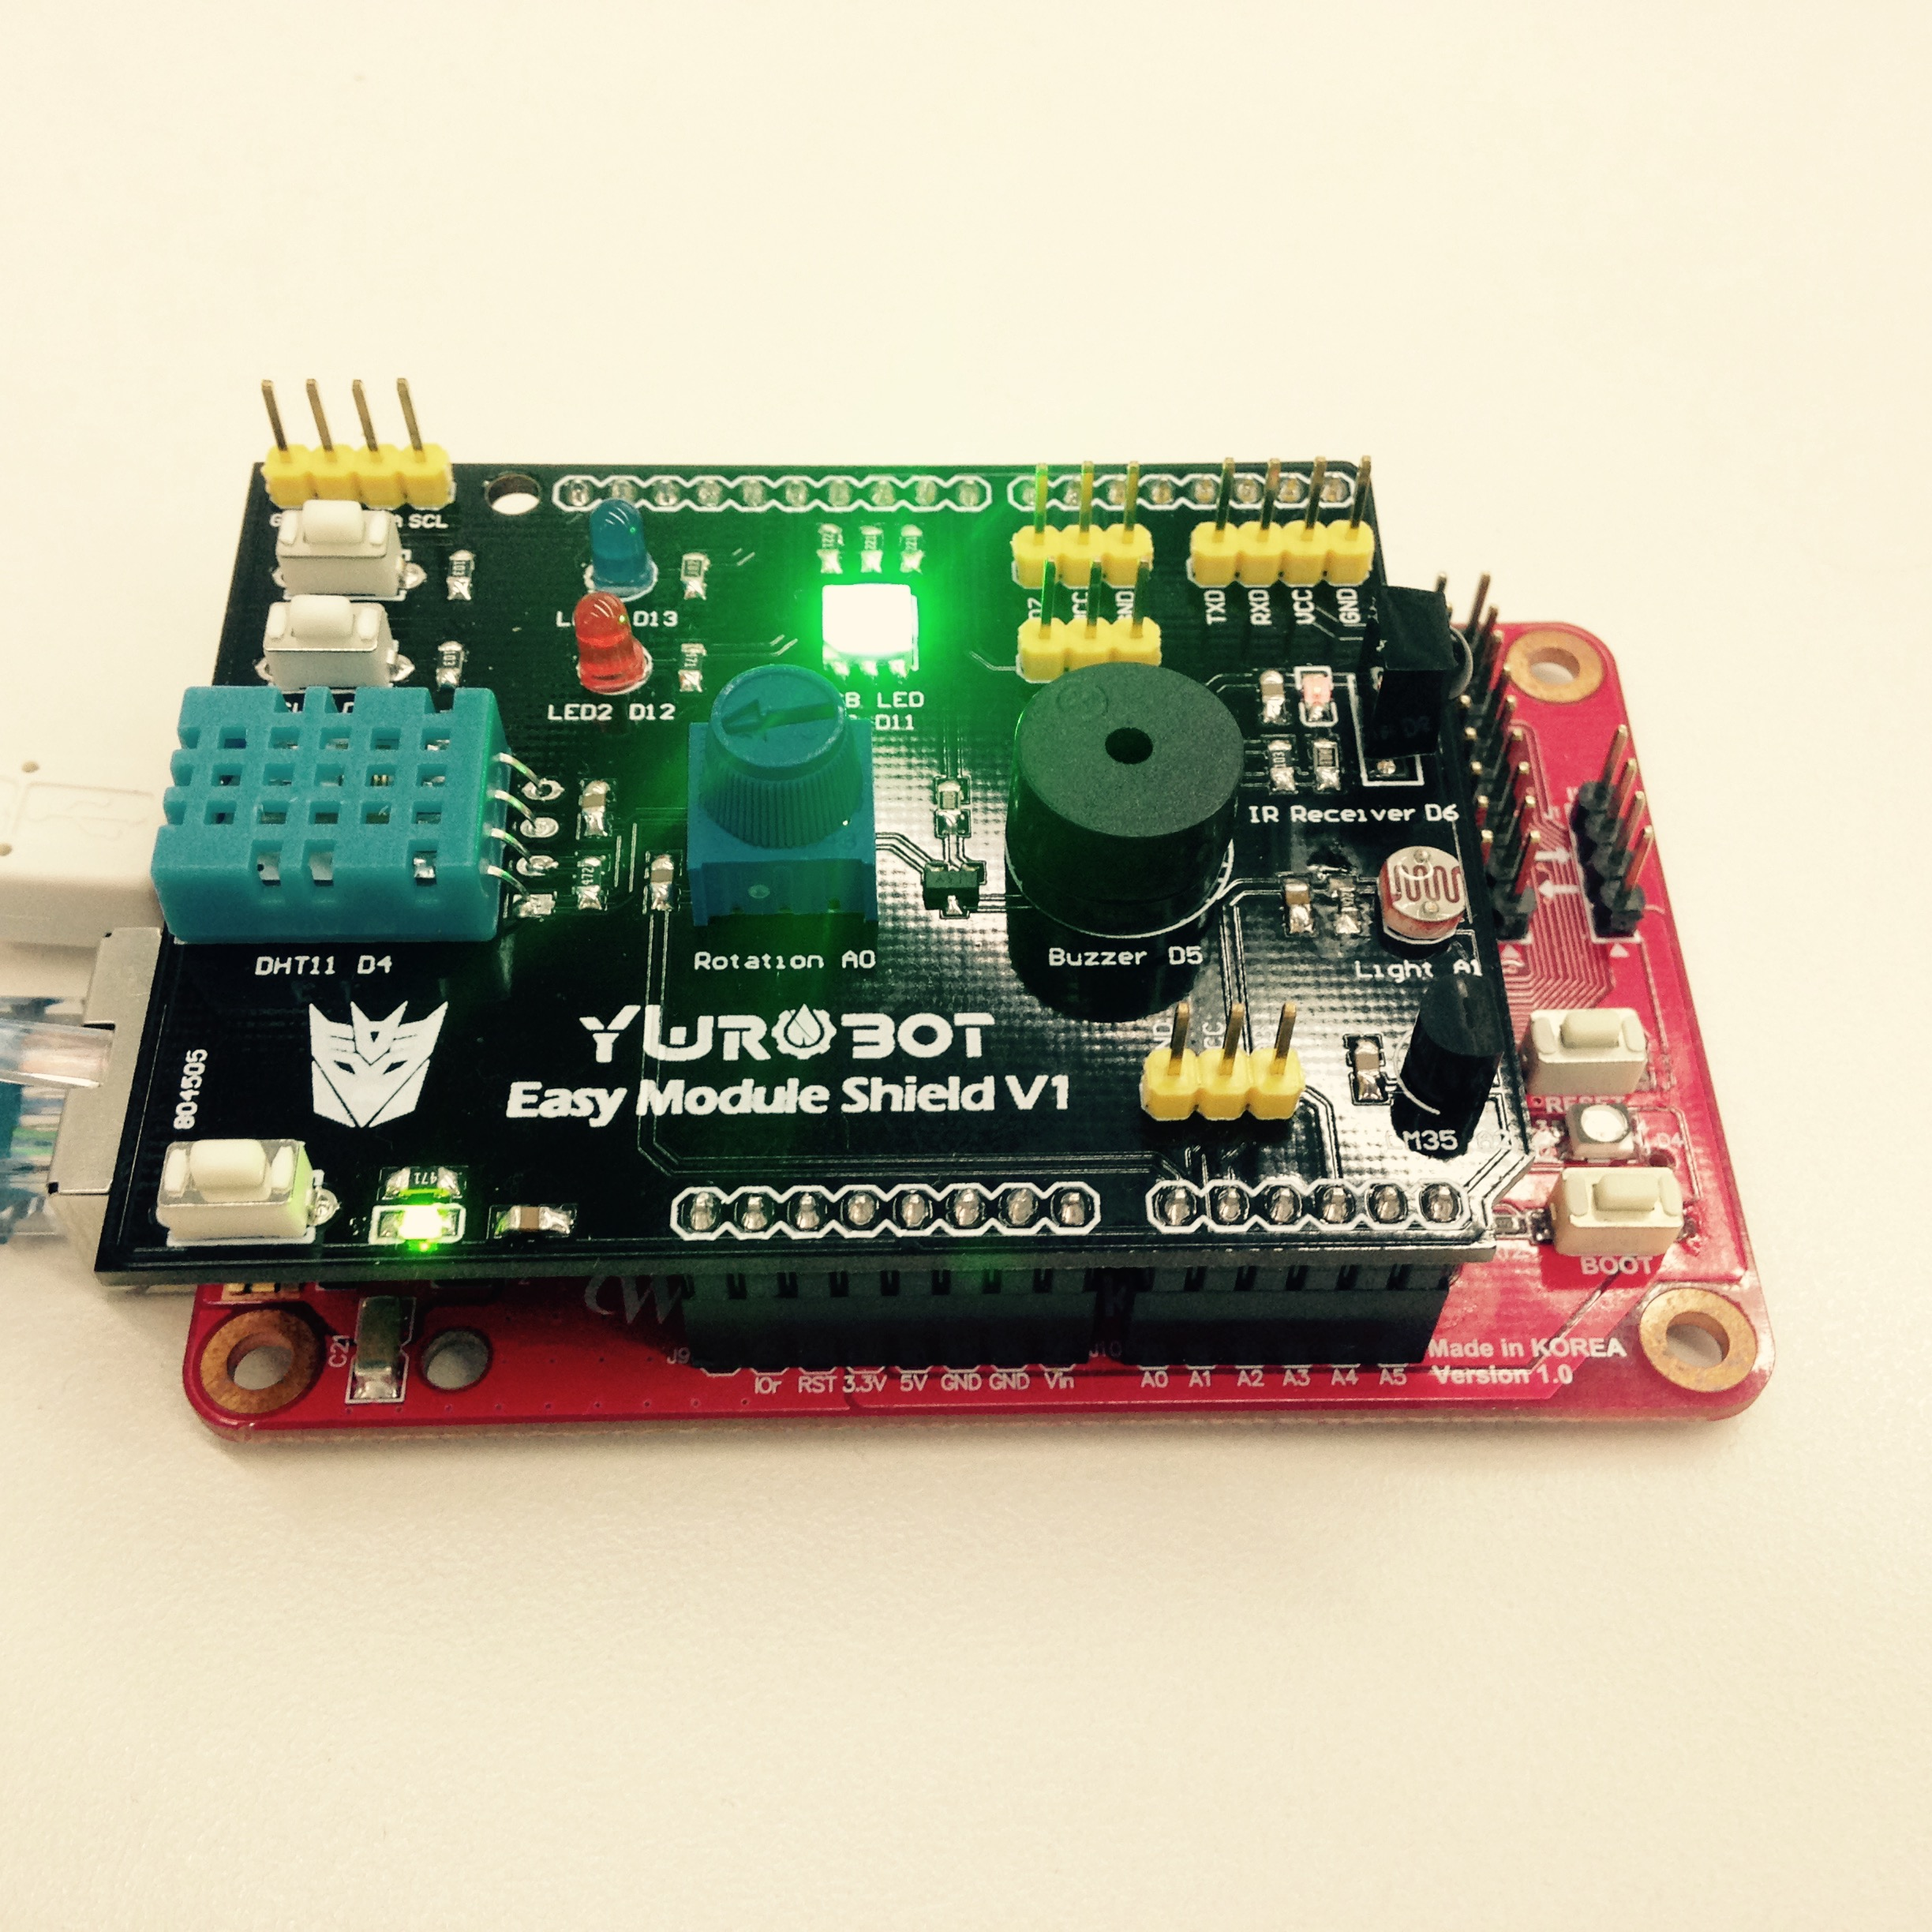 /media/uploads/bangbh/ywrobot_esay-module-shield-v1.jpg